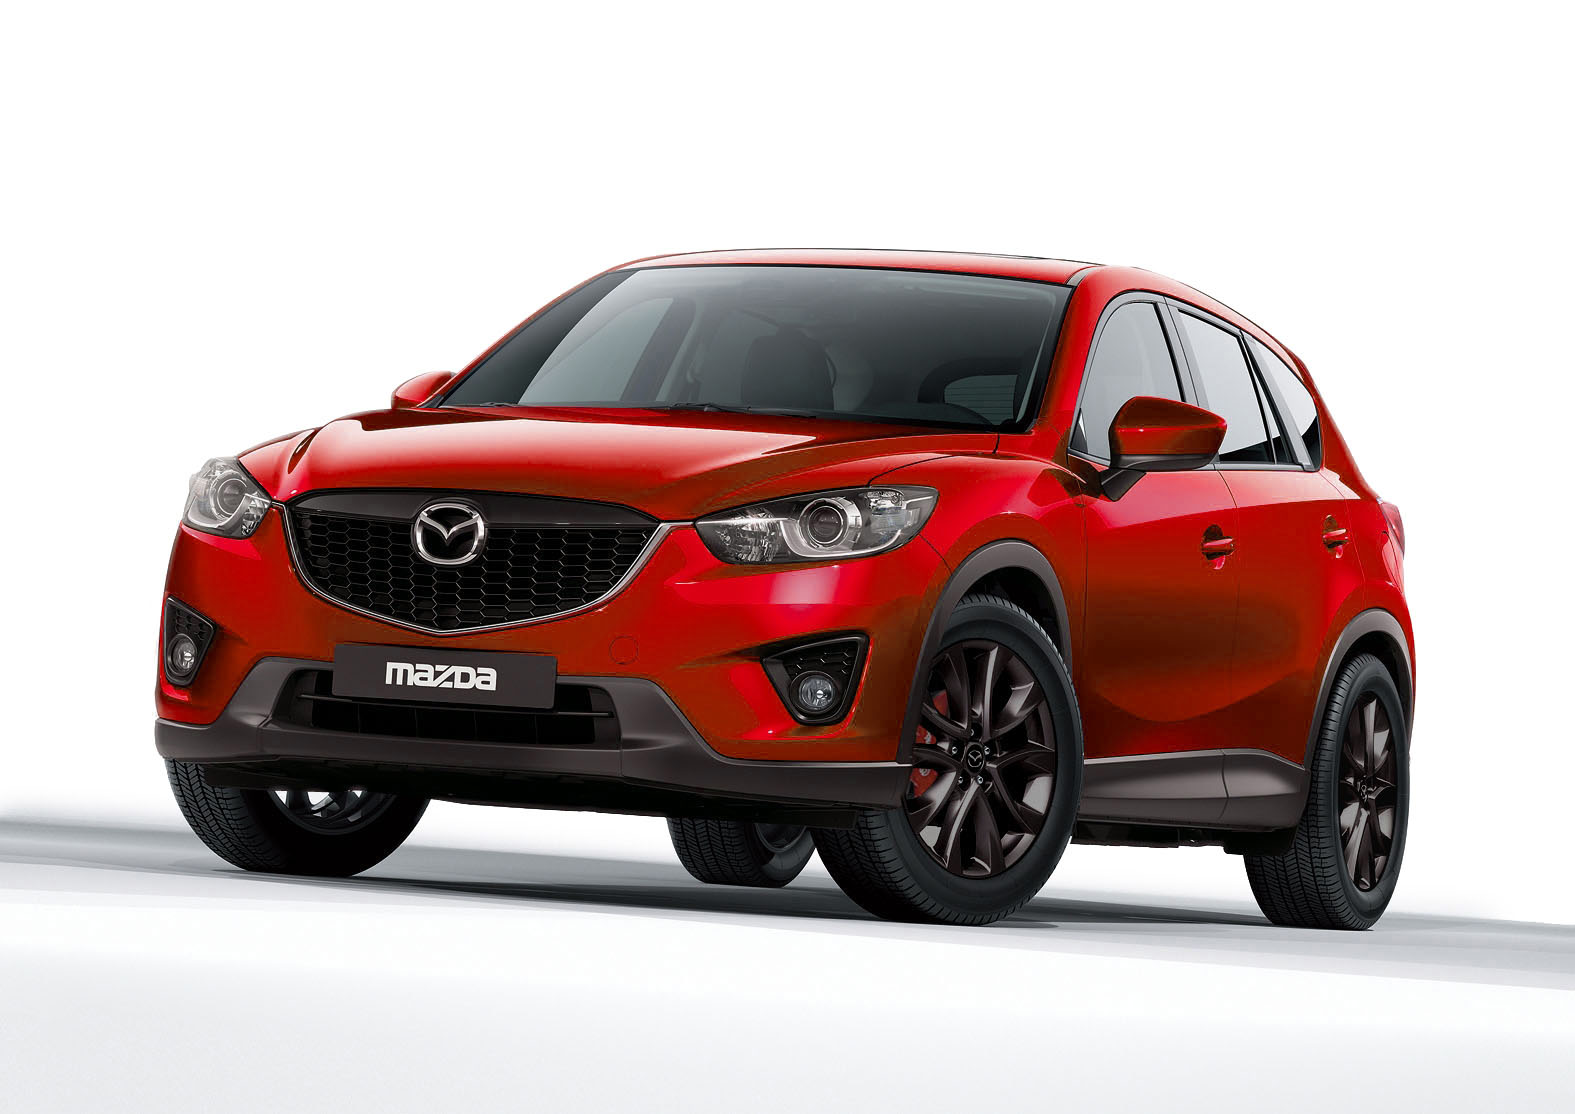 2013 Mazda CX-5 Named 2012 Crossover of the Year by Autobytel - Digital Dealer